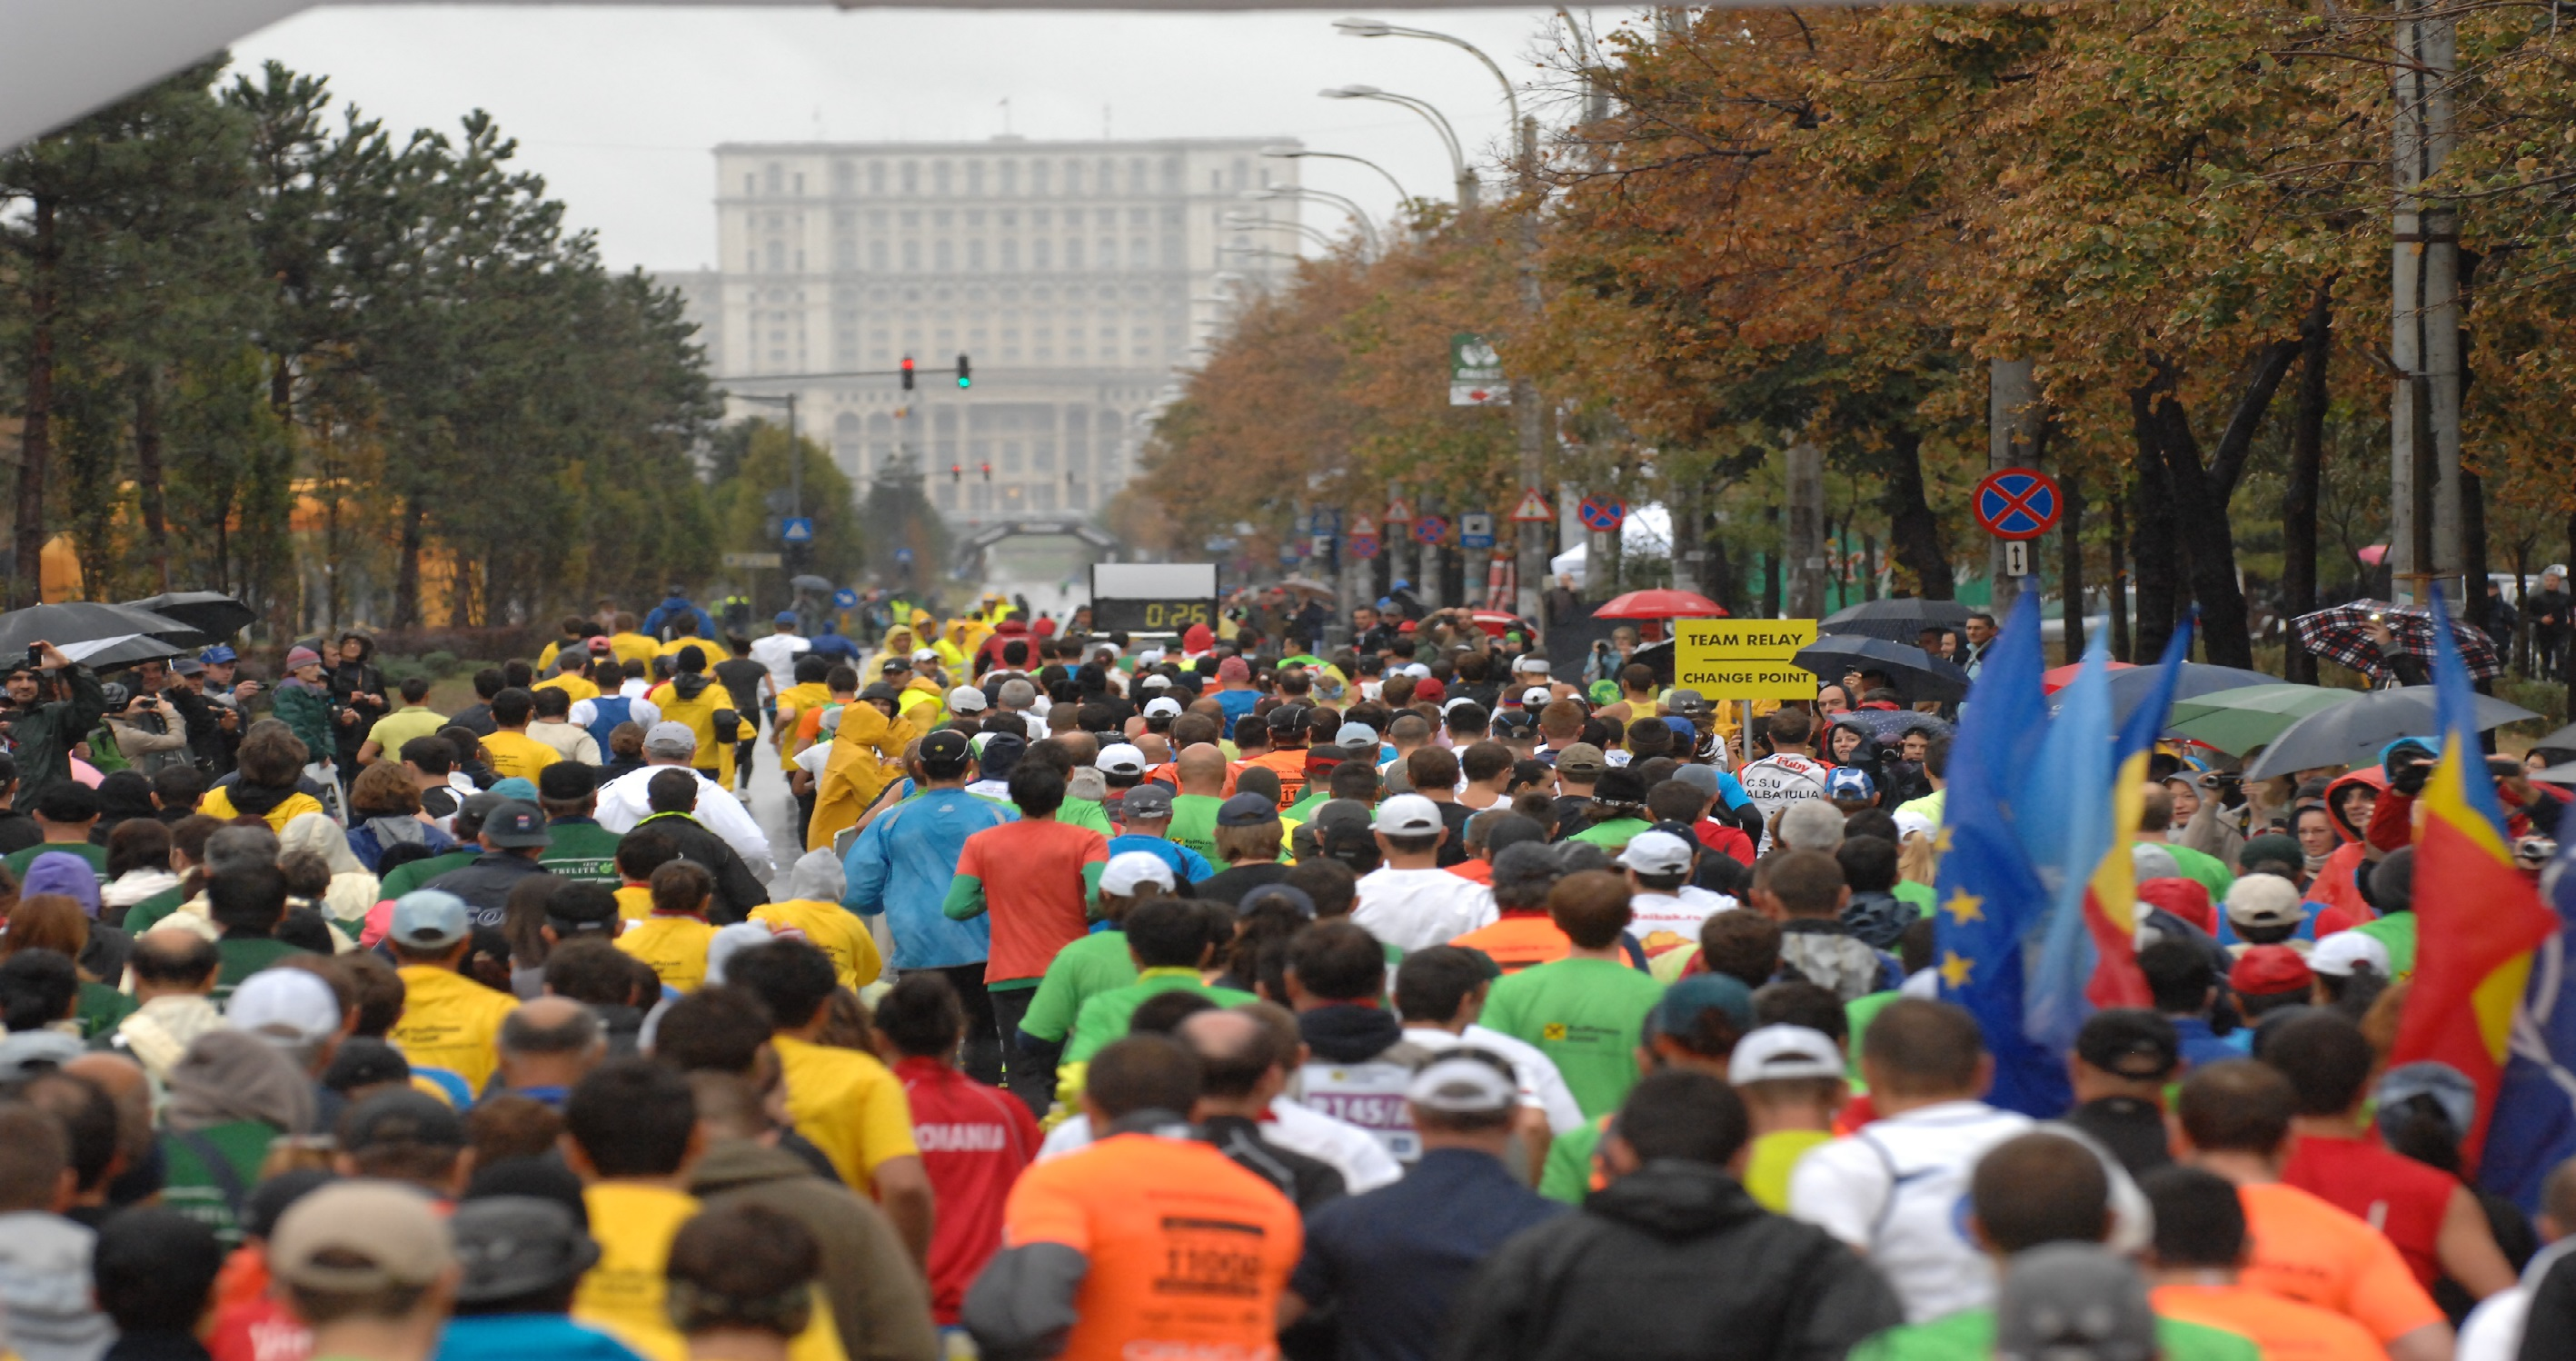 bucharest-international-marathon13-14-october-